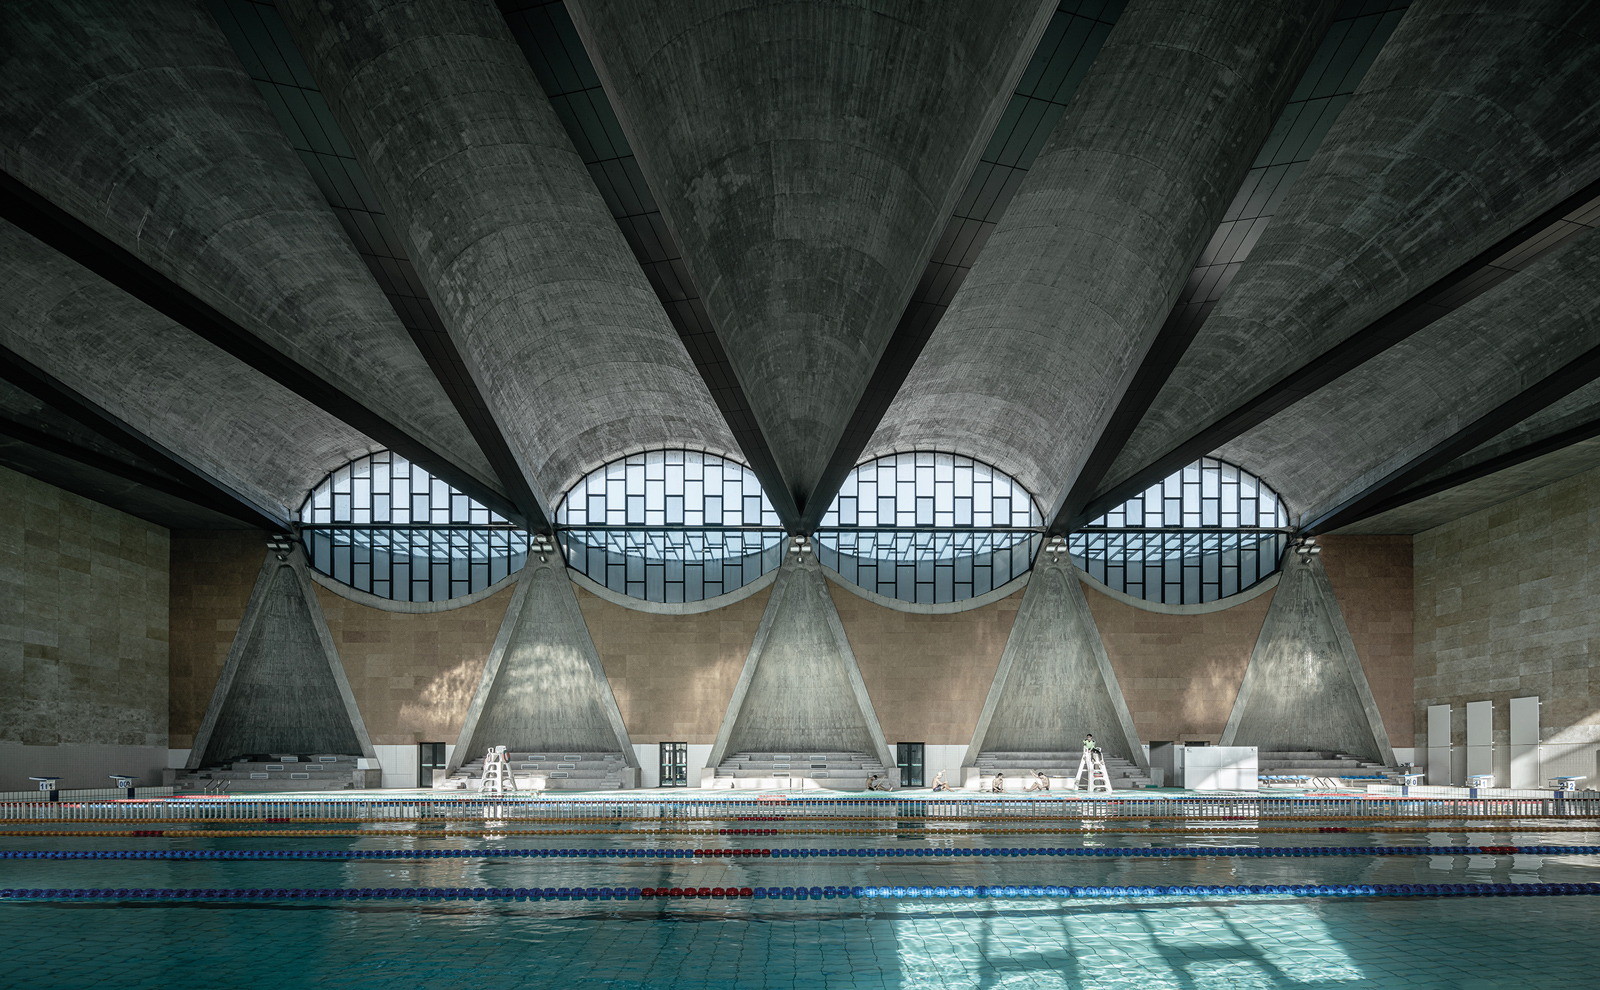 Swimming Pool of Tianjin University II lumas gallery review discount code coupon code